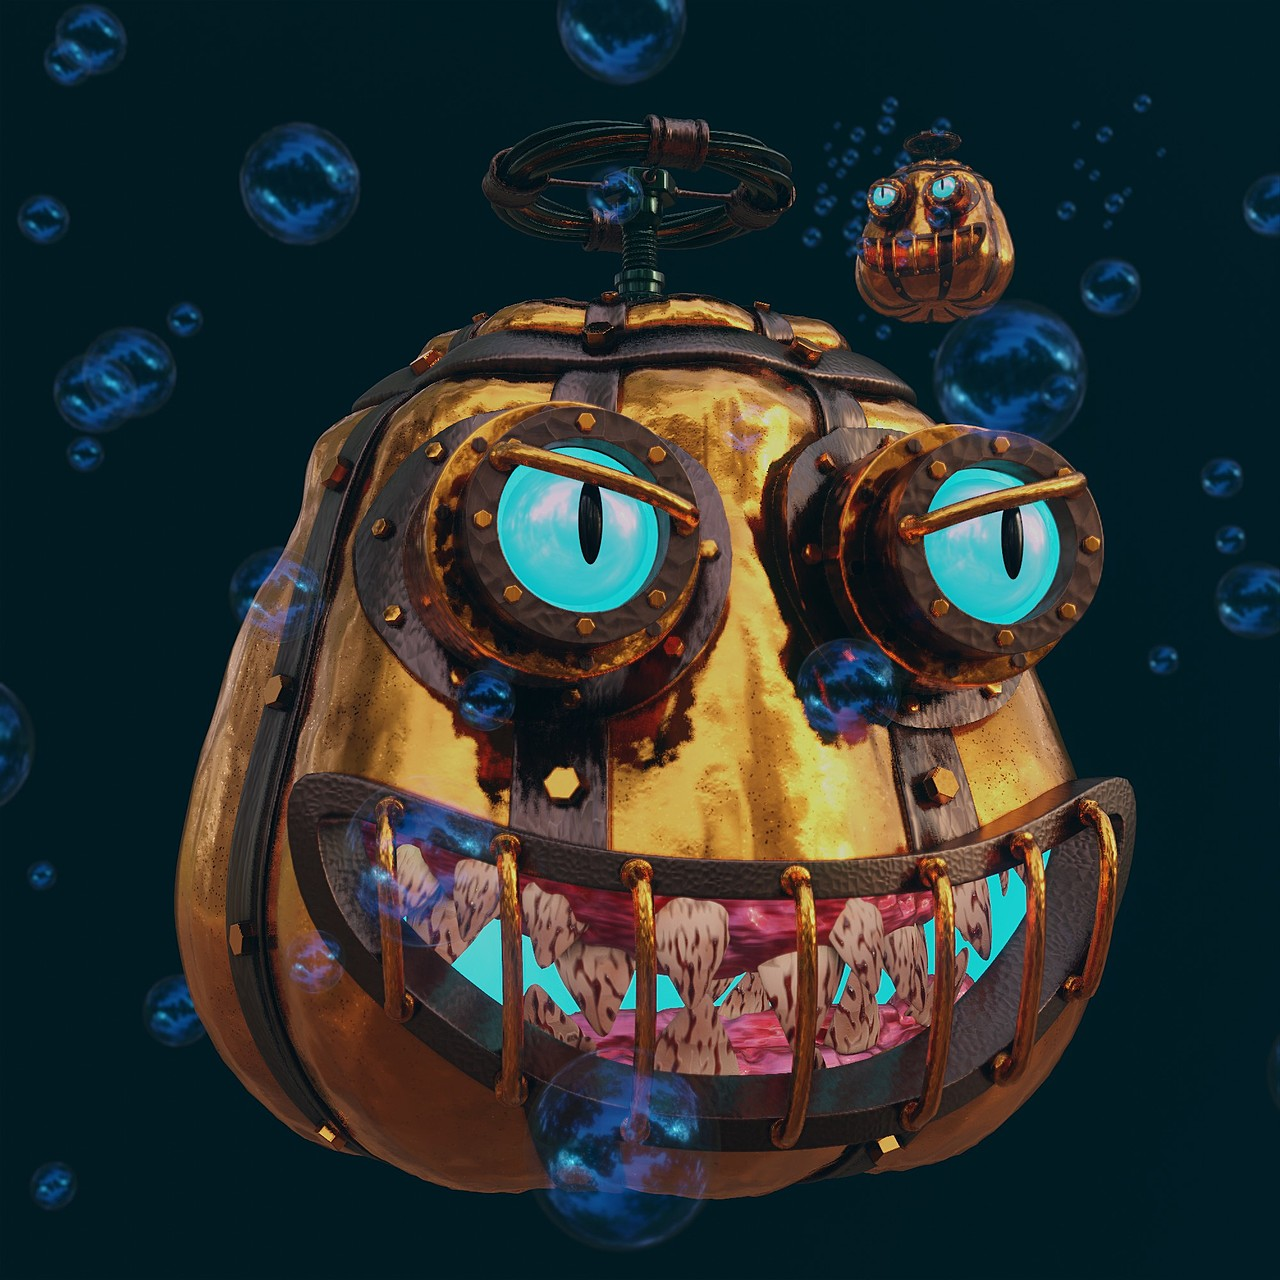 20,000 Leagues (Epic pumpkin)